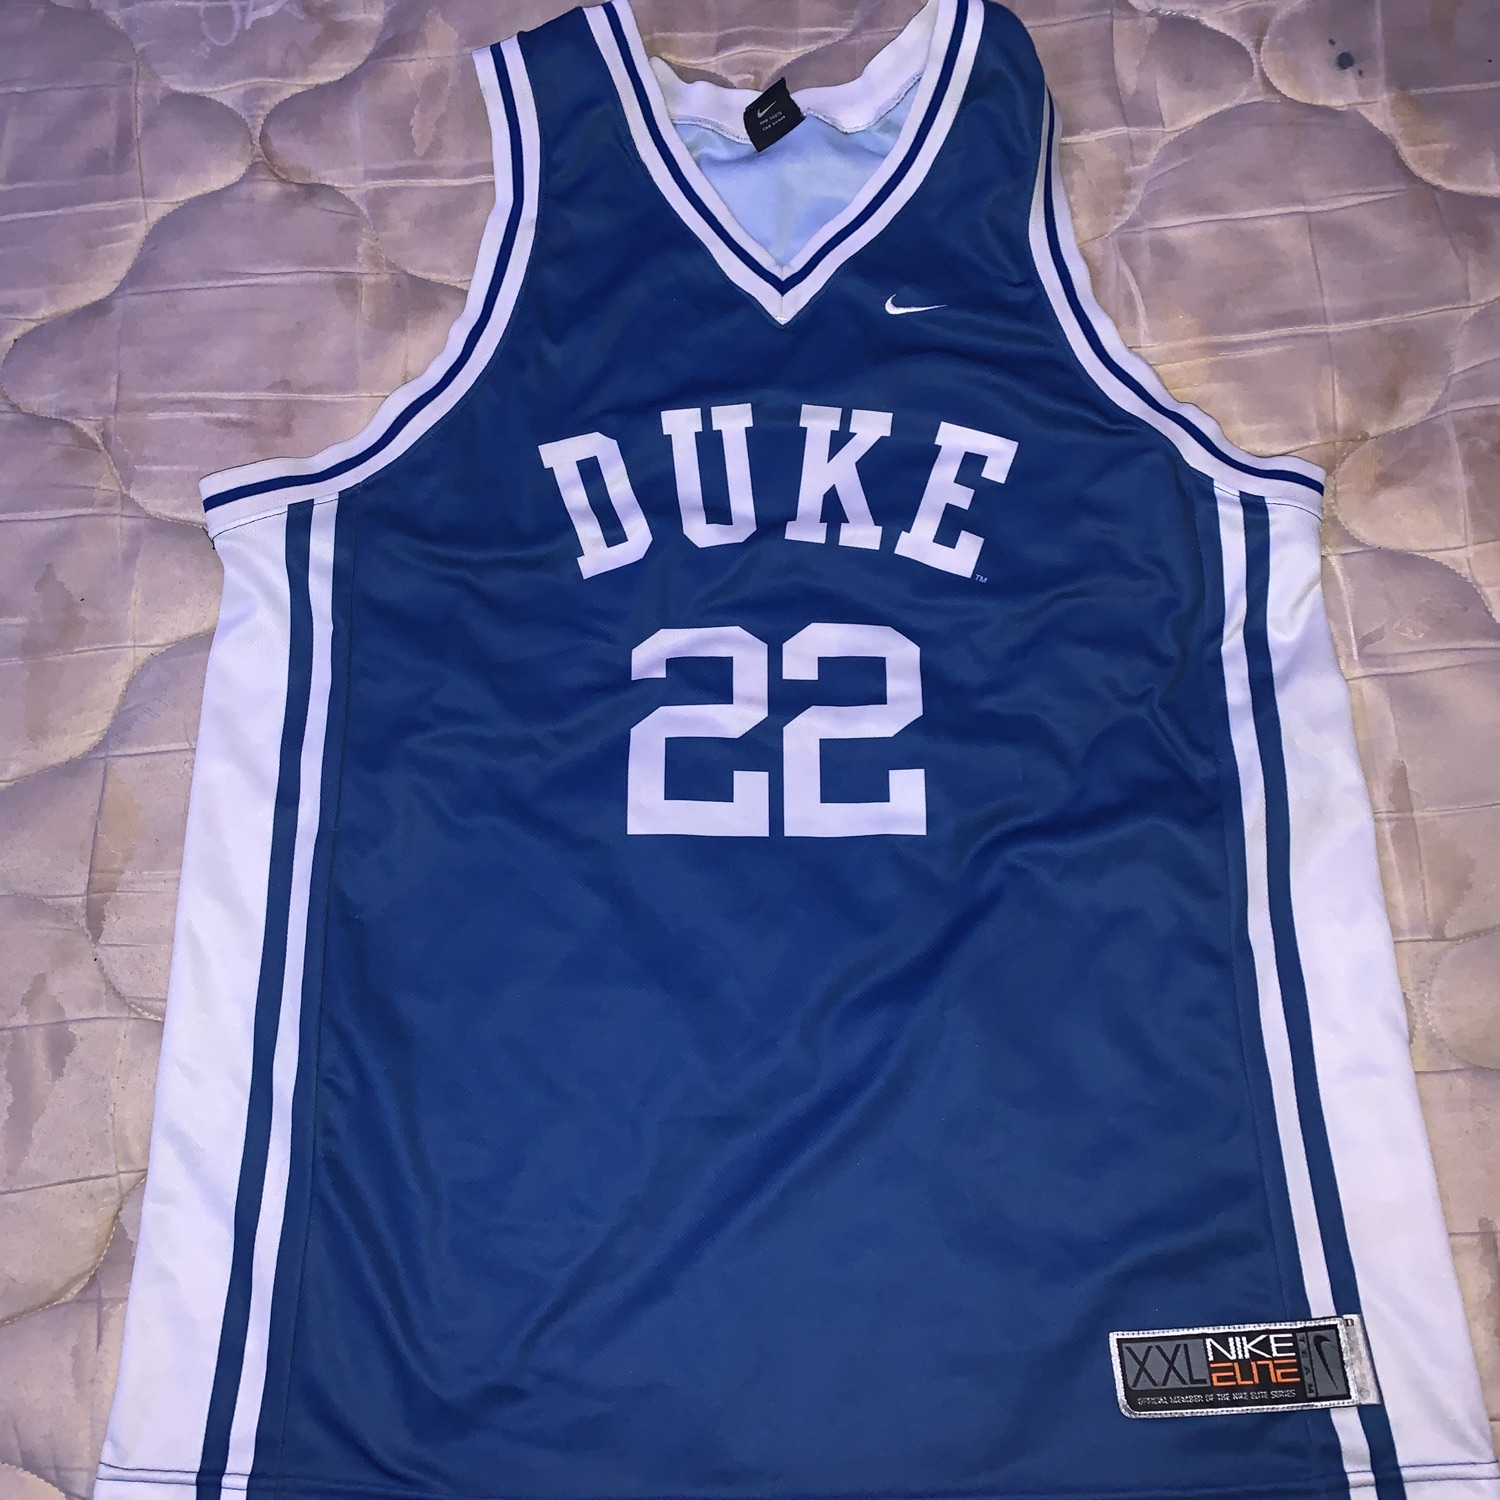 new style d5f97 d5dfd Vintage Nike Duke Basketball Jersey